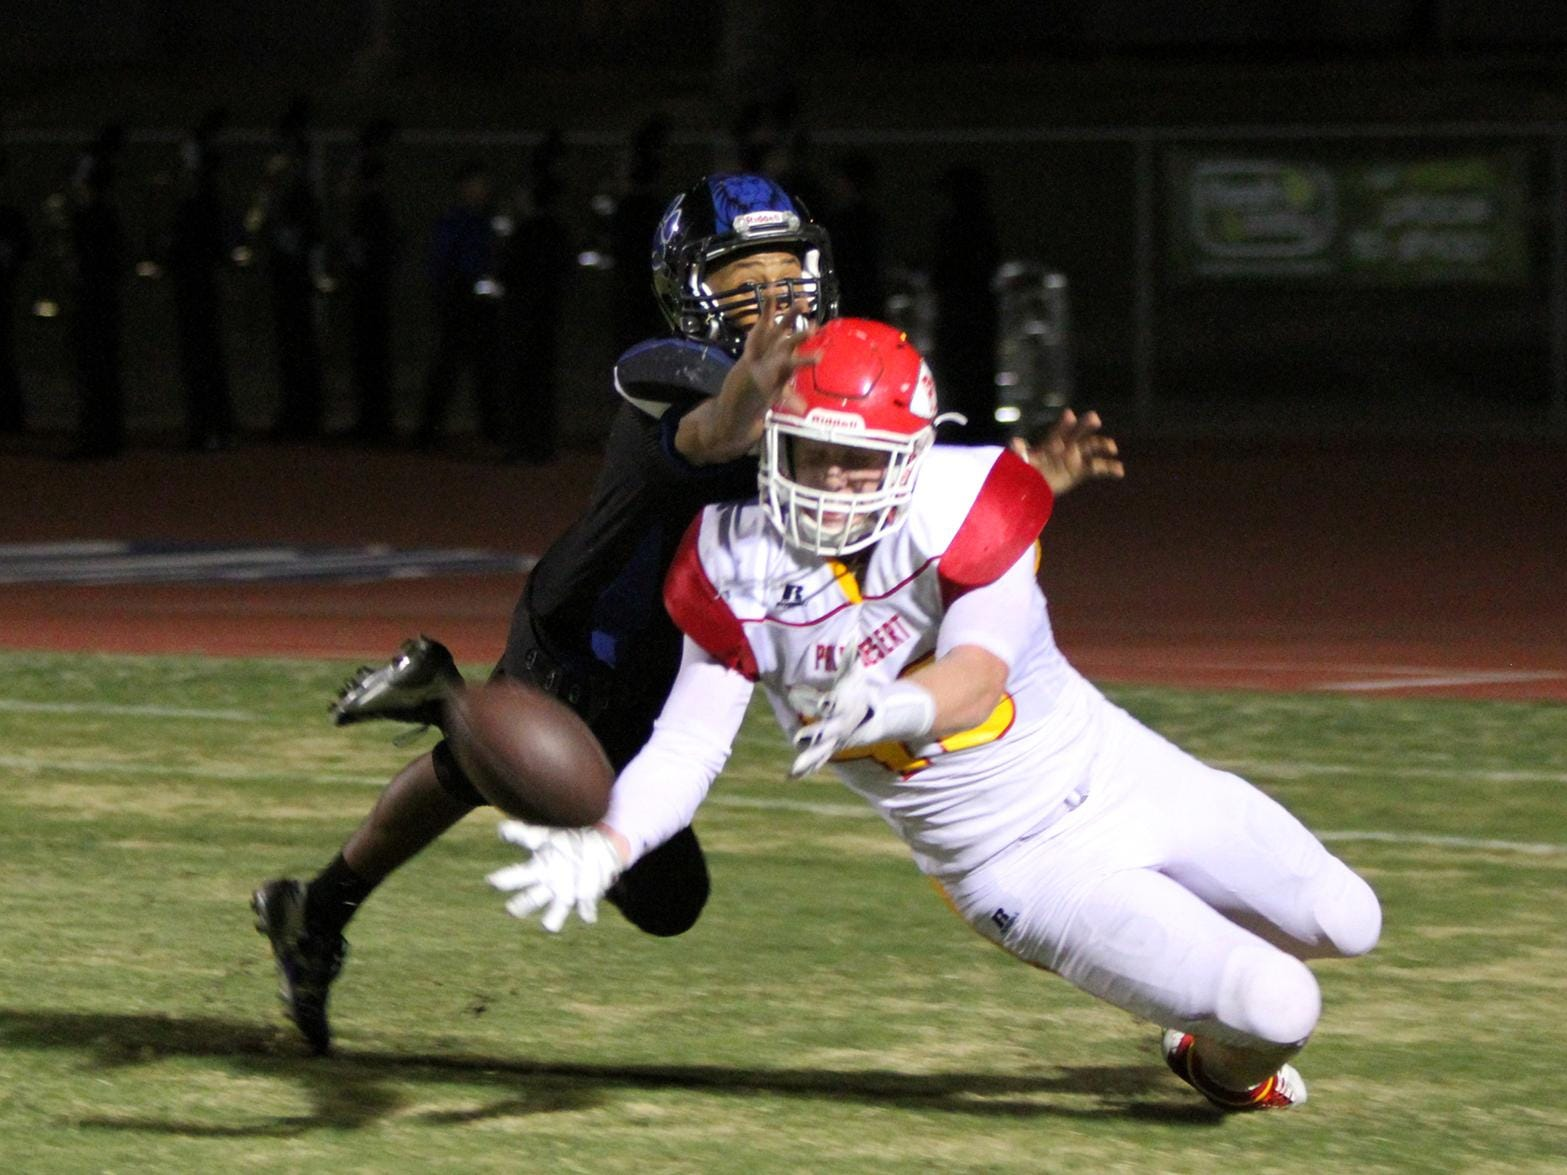 10/16/15 Taya Gray, Special to The Desert Sun Cathedral City's Timothy Miller defends a touchdown pass intended for Palm Desert's Tommy Jacobsson during the first half of the game in Cathedral City on Friday, October 16, 2015.